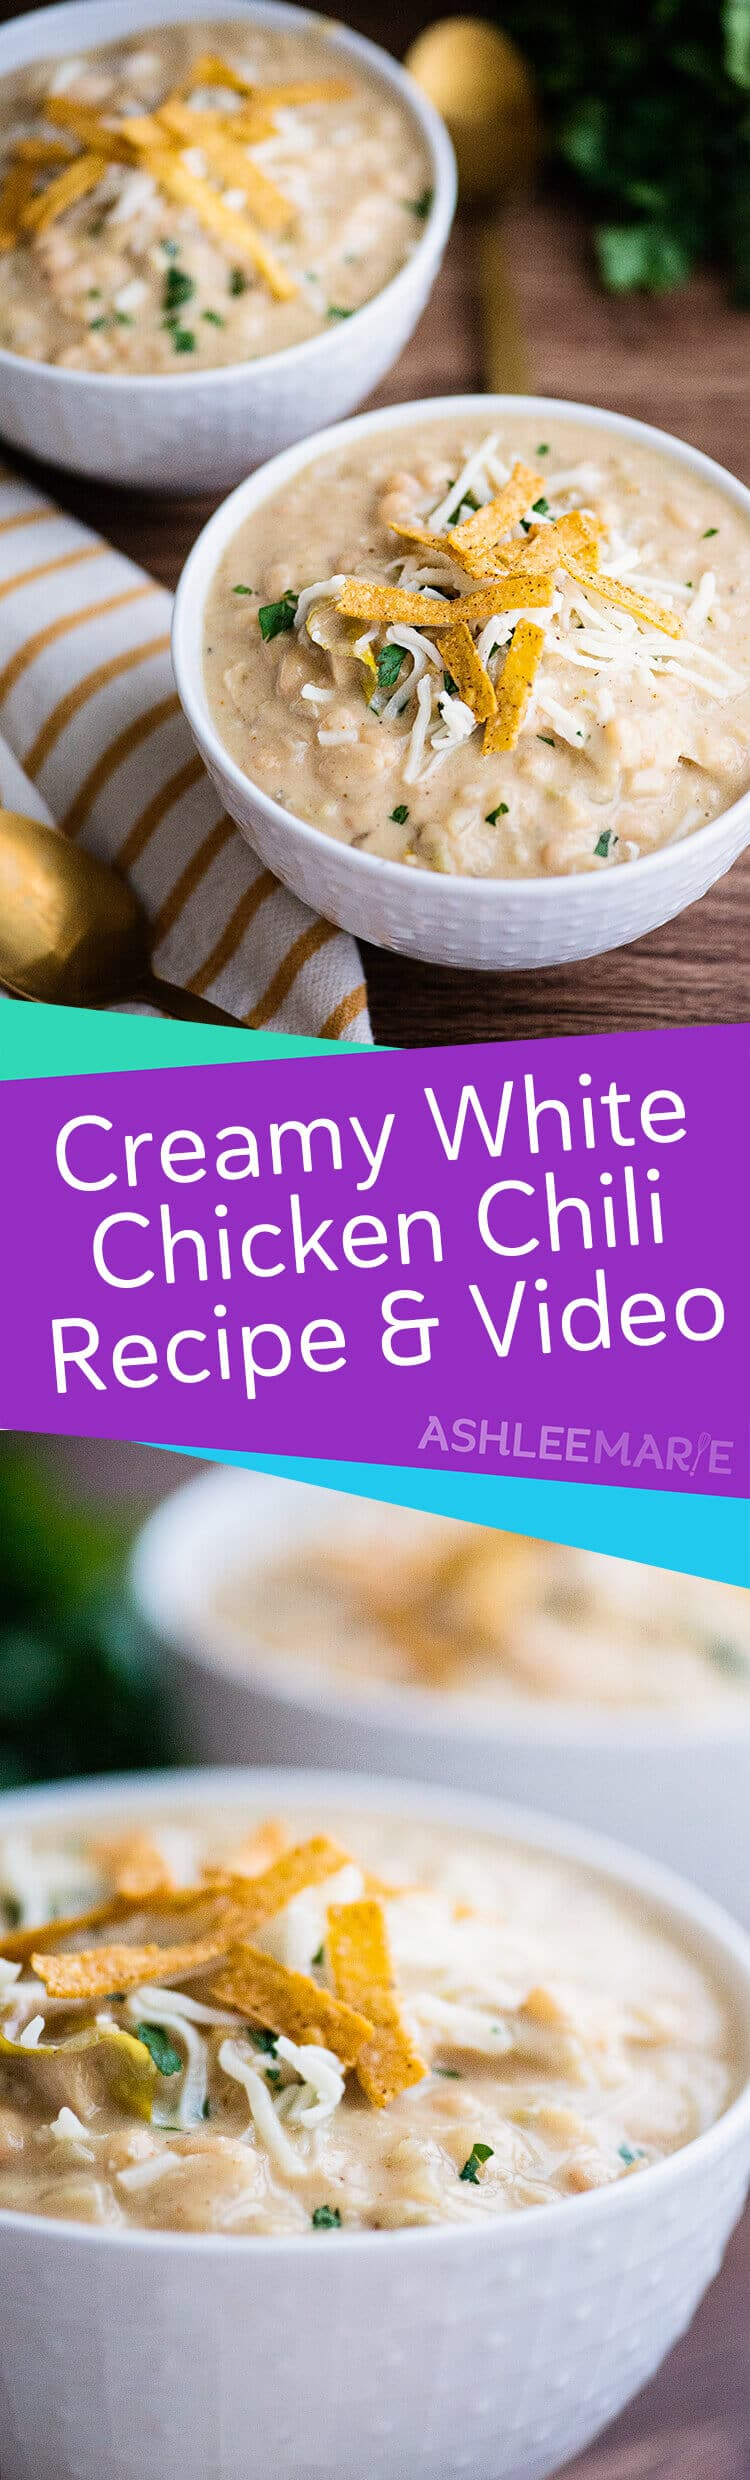 Creamy White Chicken Chili Recipe And Video Ashlee Marie Real Fun With Real Food